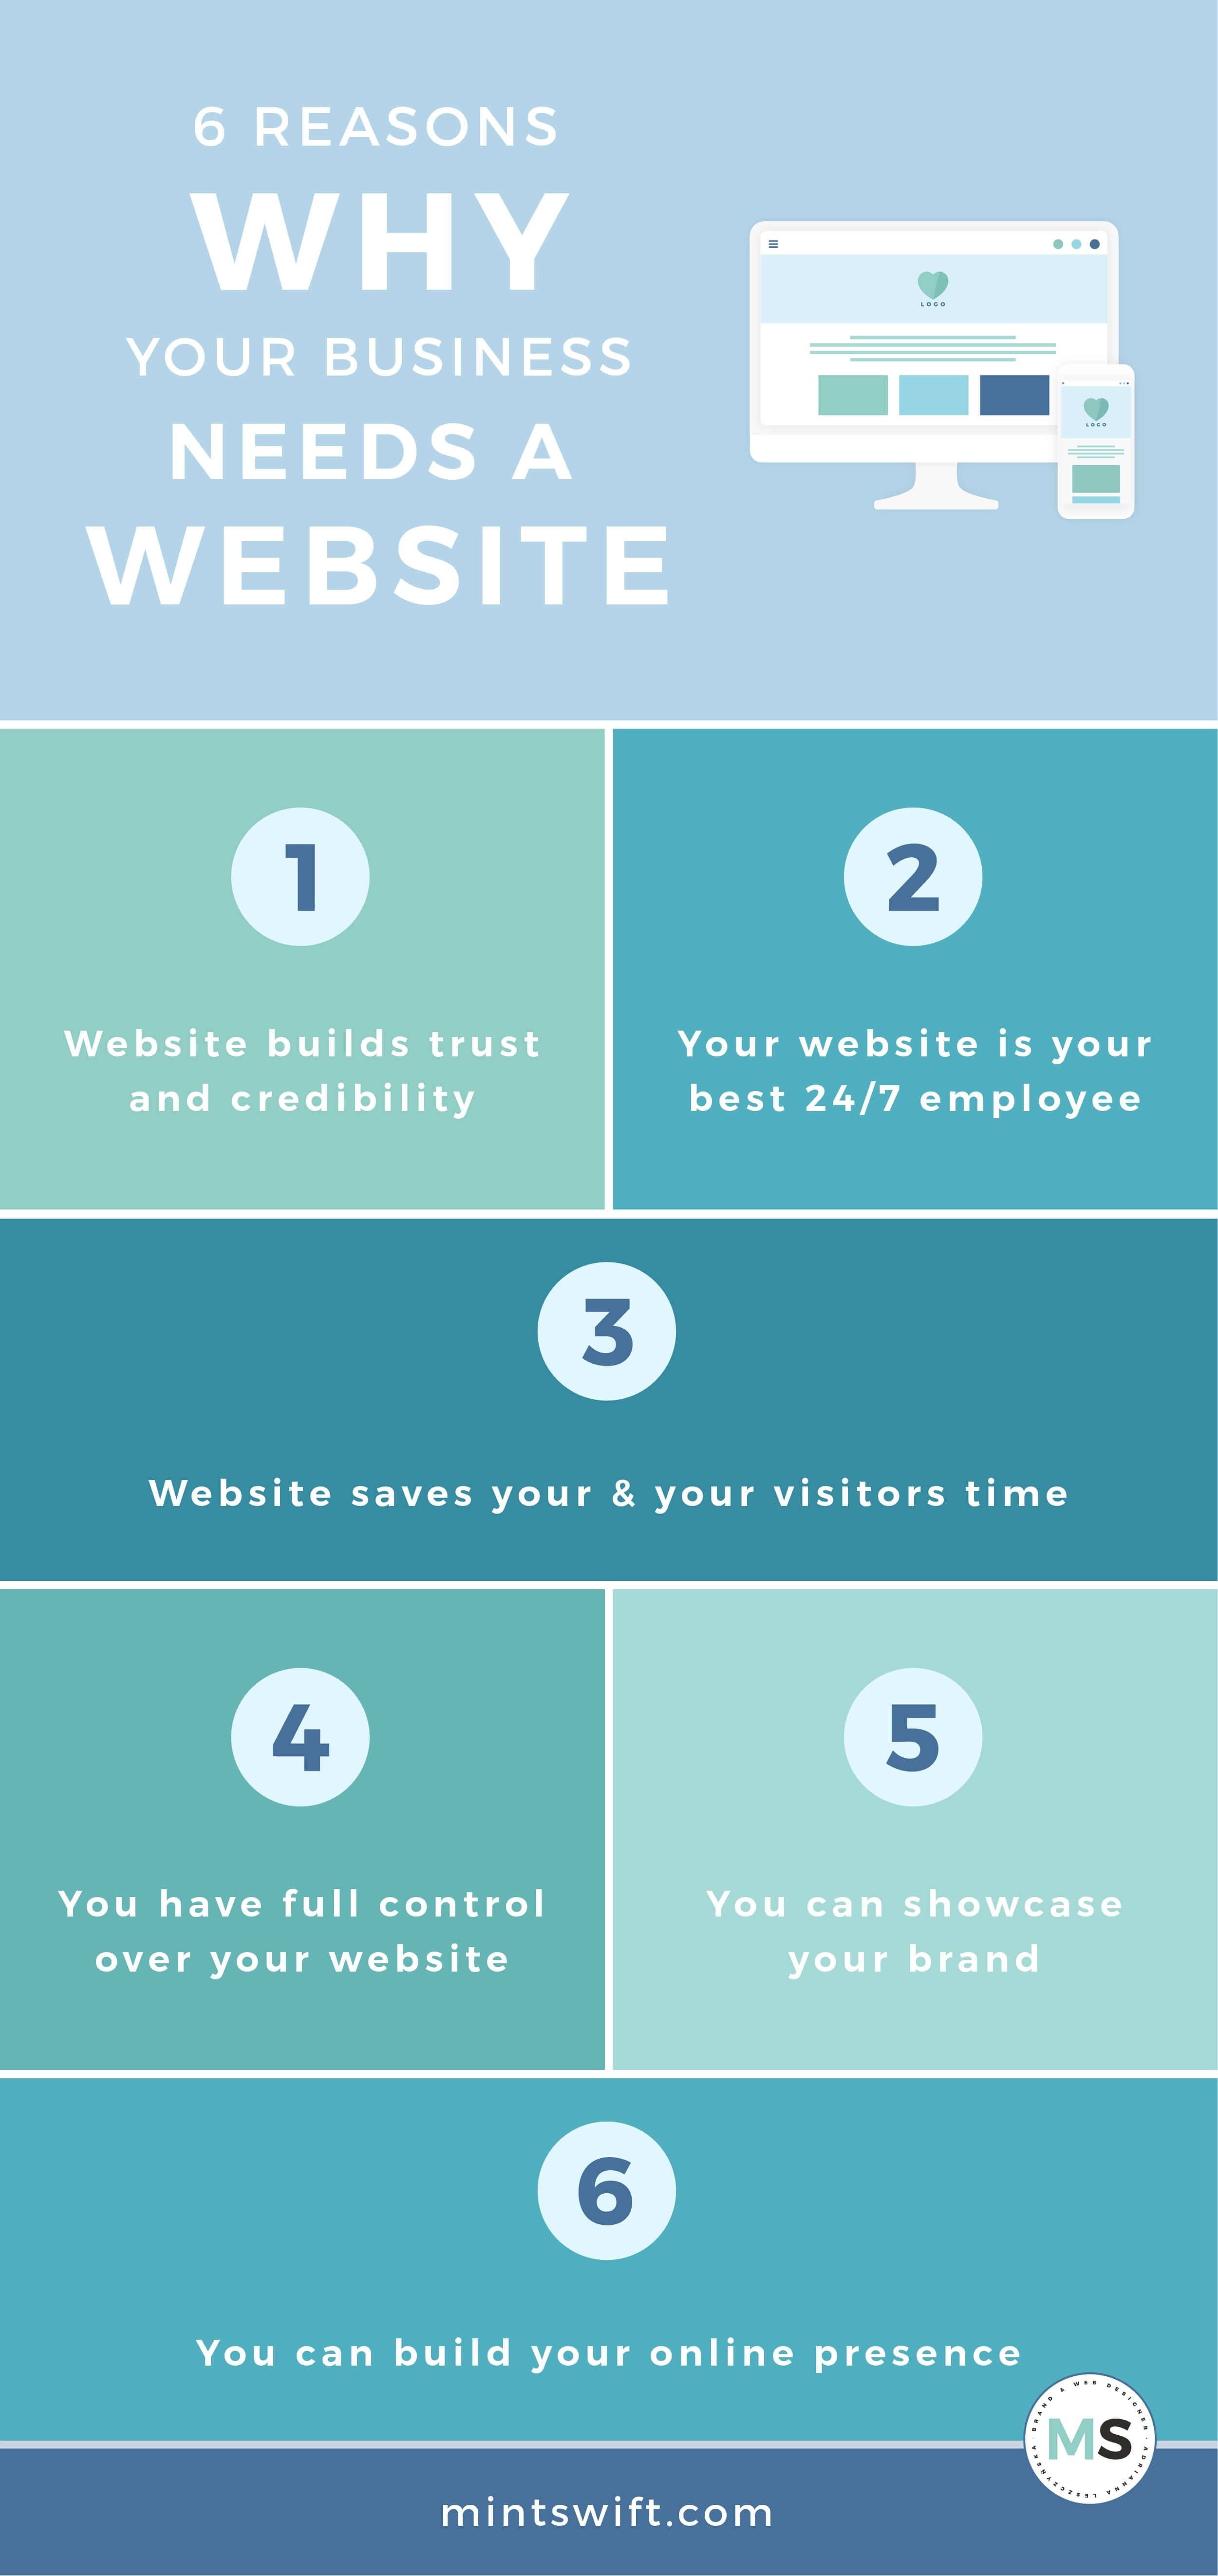 6 Reasons Why Your Business Needs a Website infographic - MintSwift